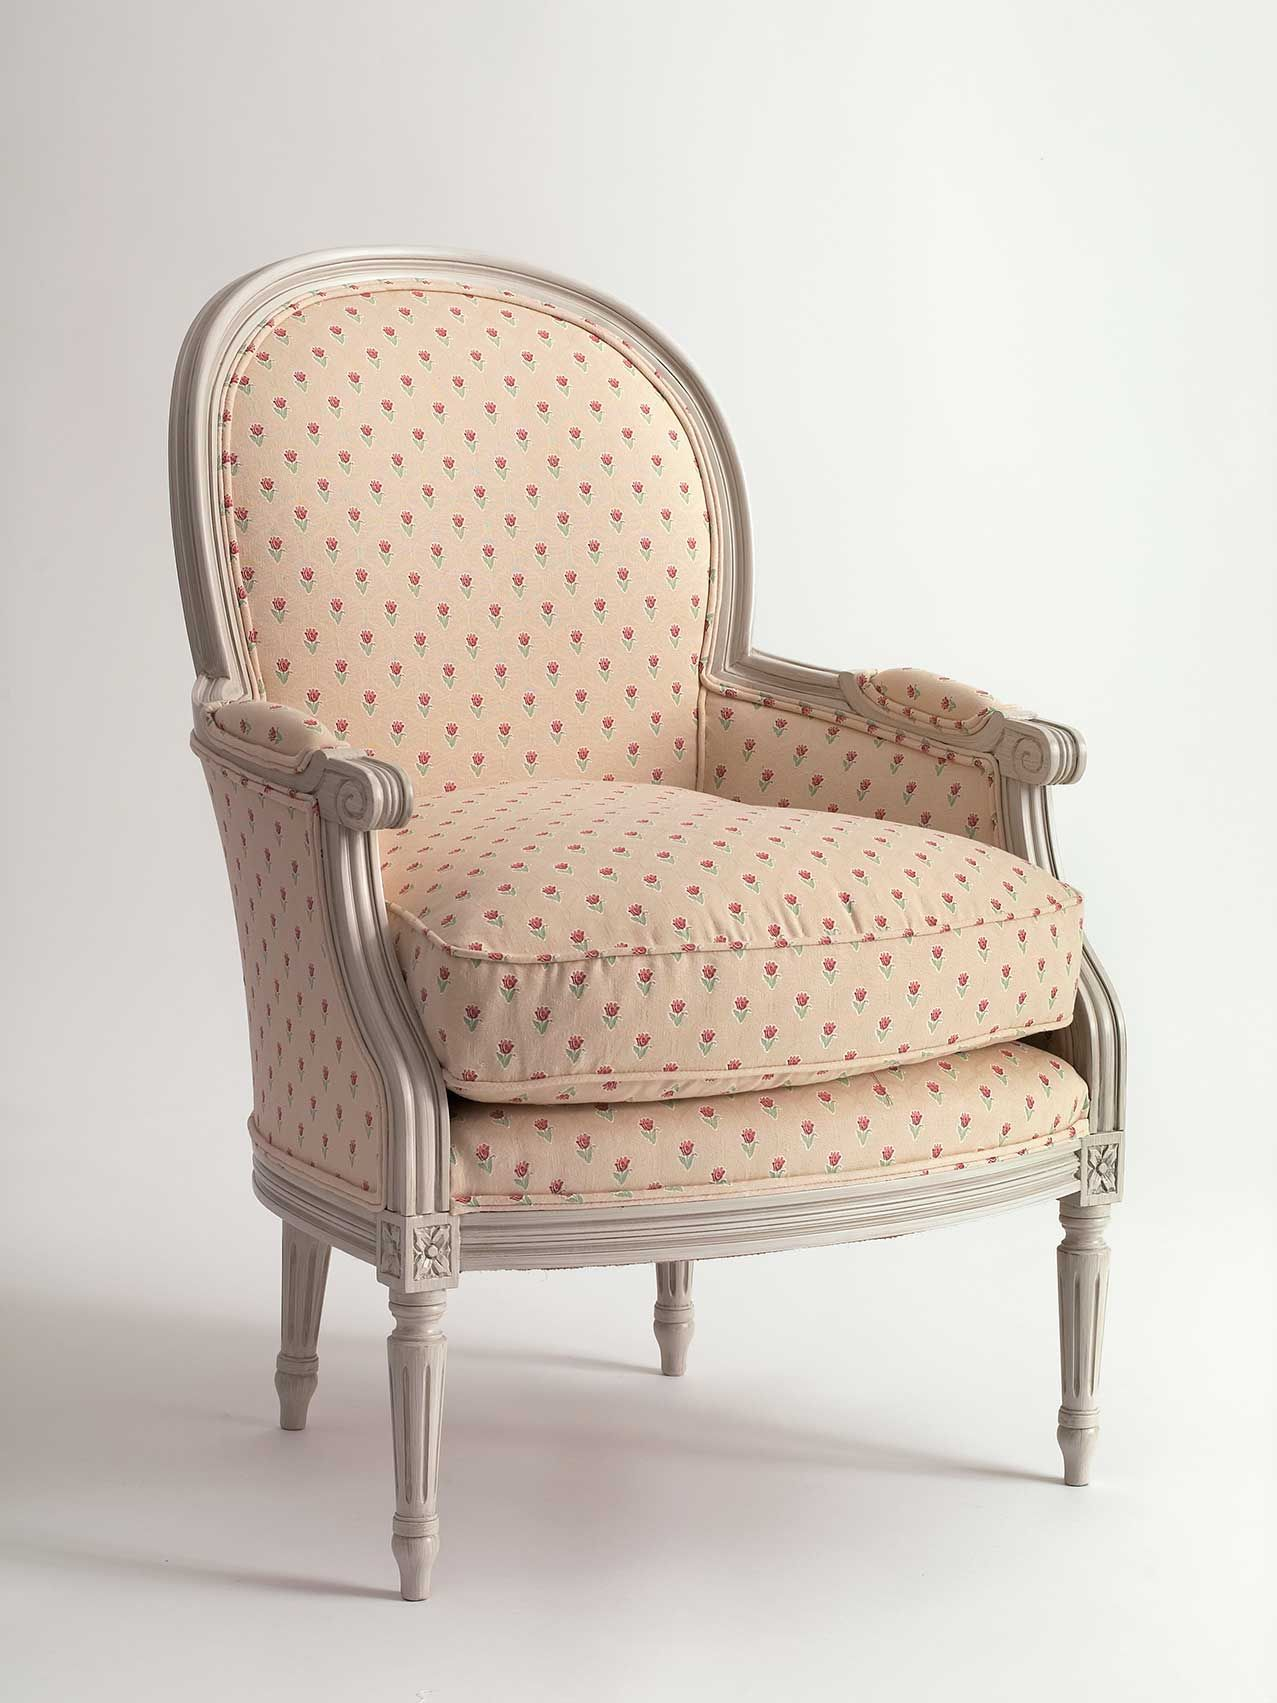 Louis Begere Chair 475 Occasional Chairs Chair French Bergere Chairs